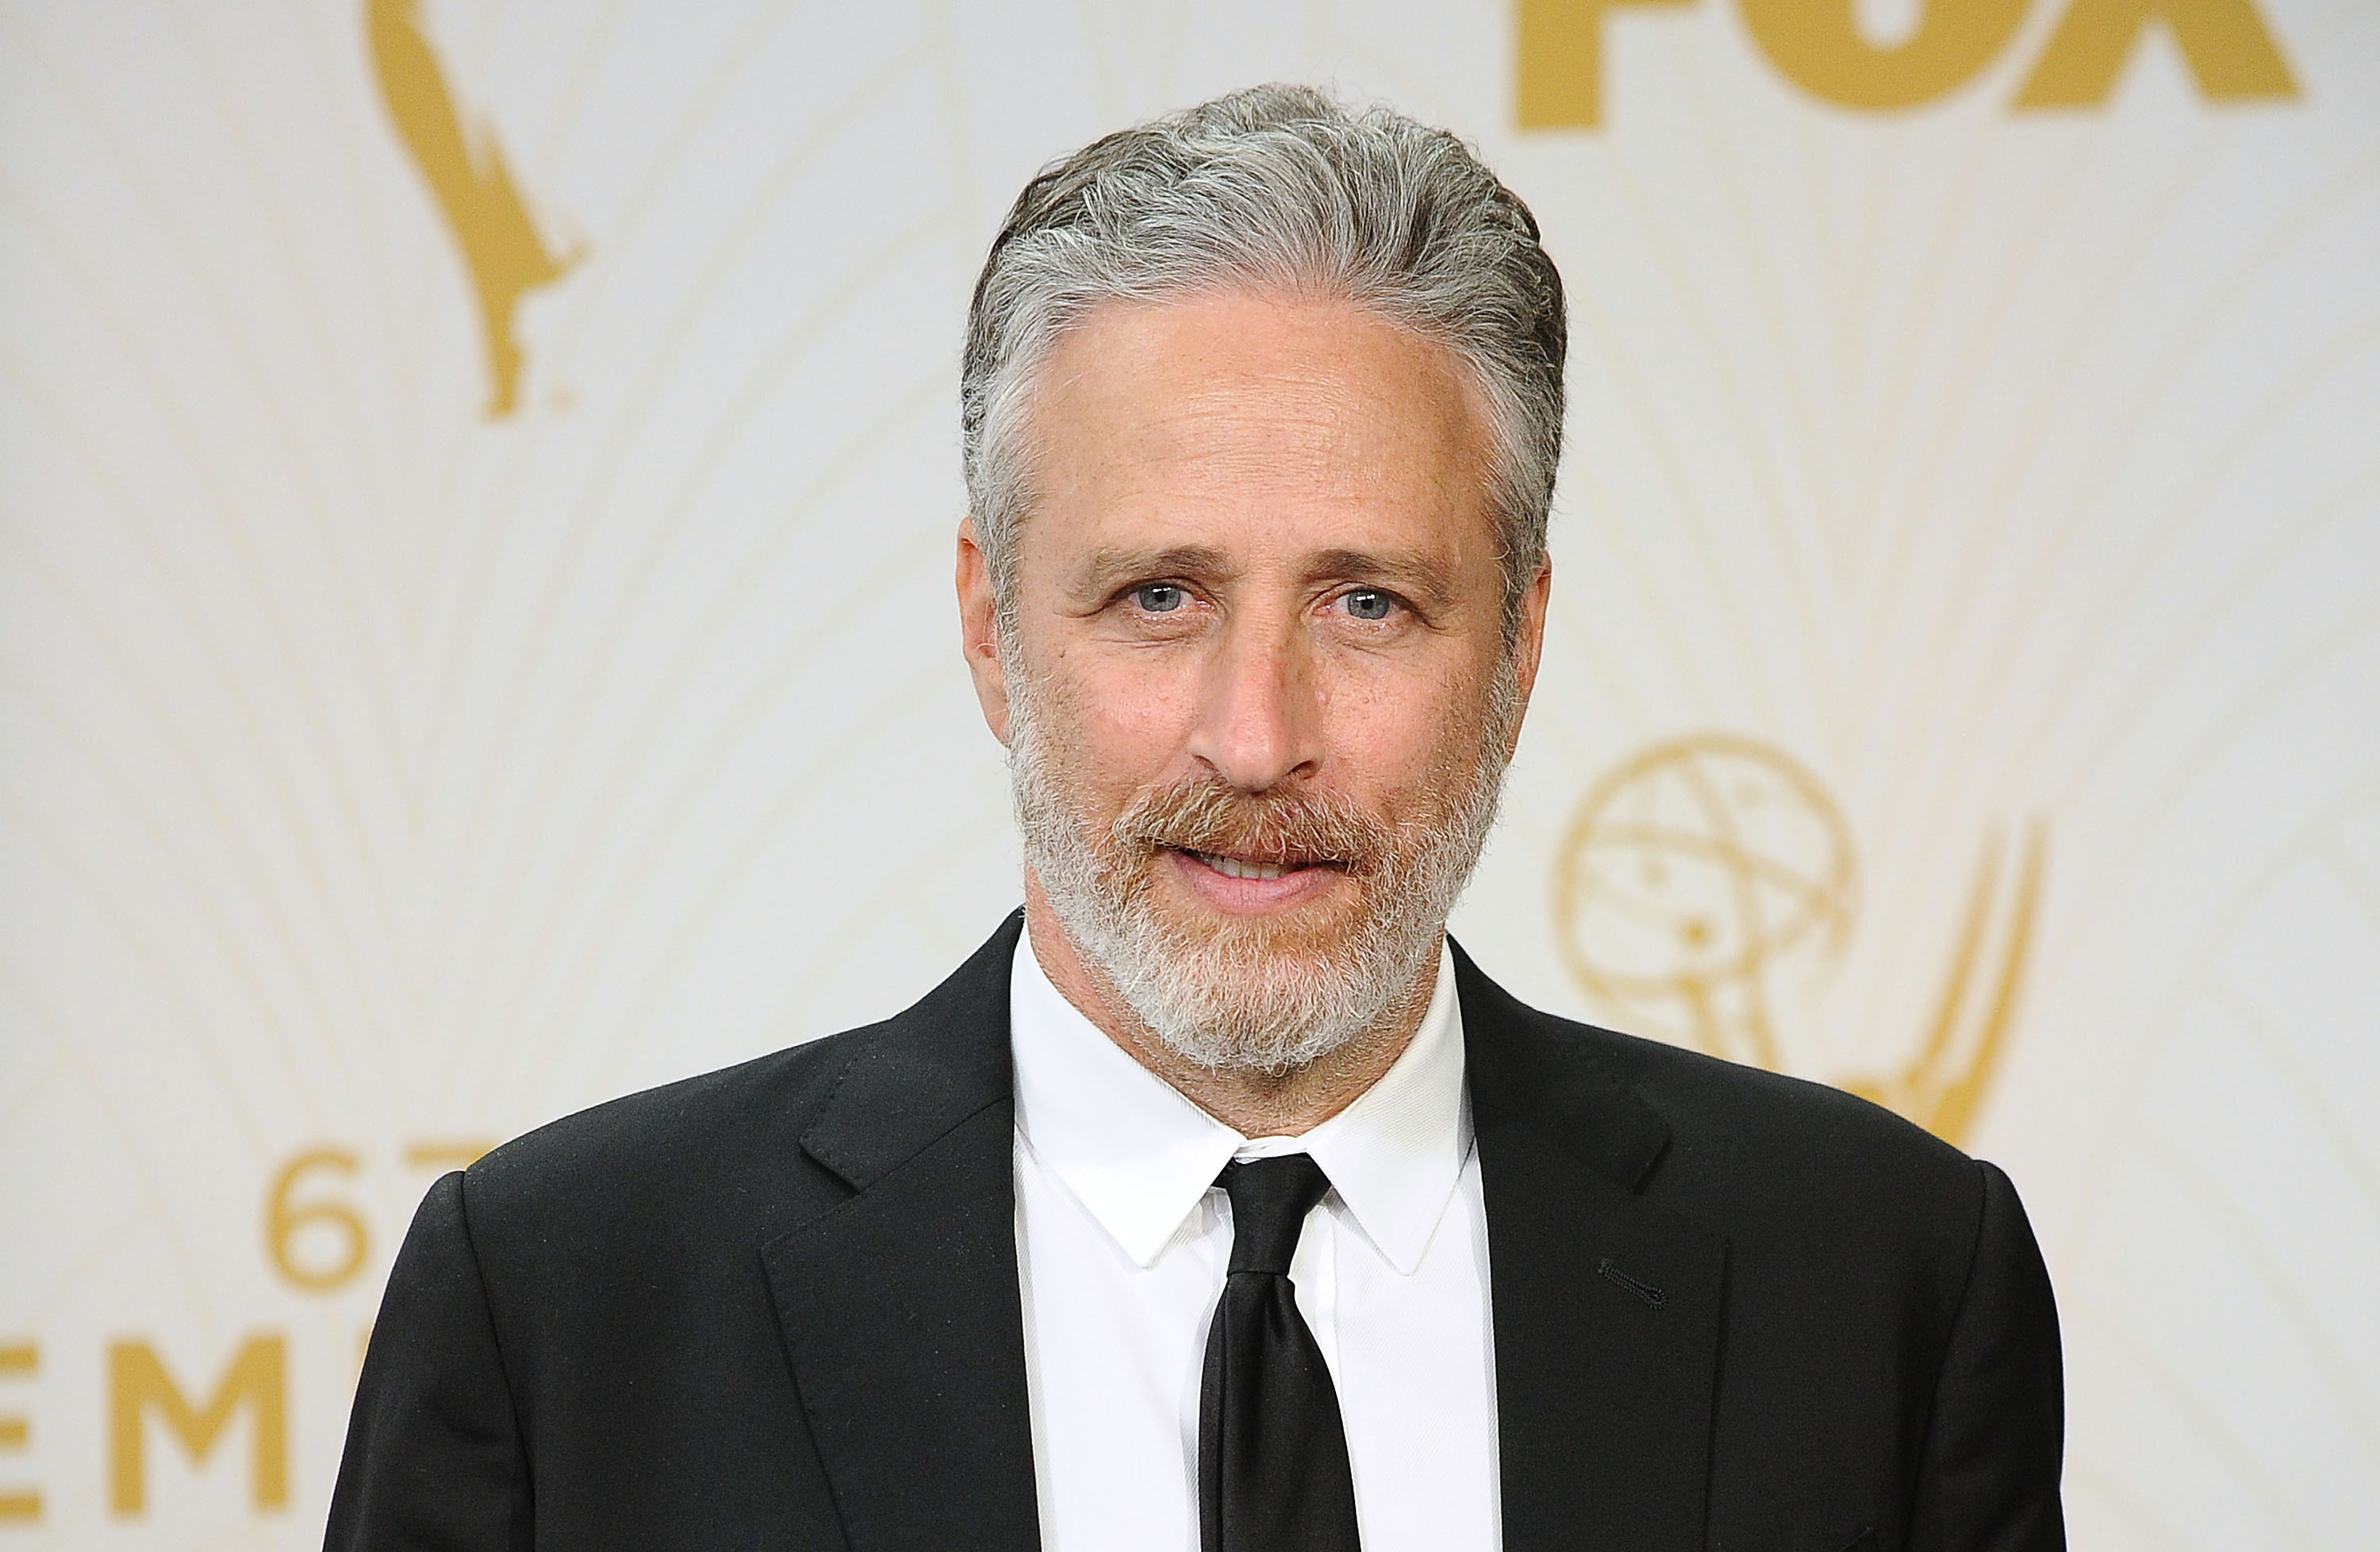 Jon Stewart poses in the press room at the 67th annual Primetime Emmy Awards at Microsoft Theater on Sept. 20, 2015 in Los Angeles, Calif.